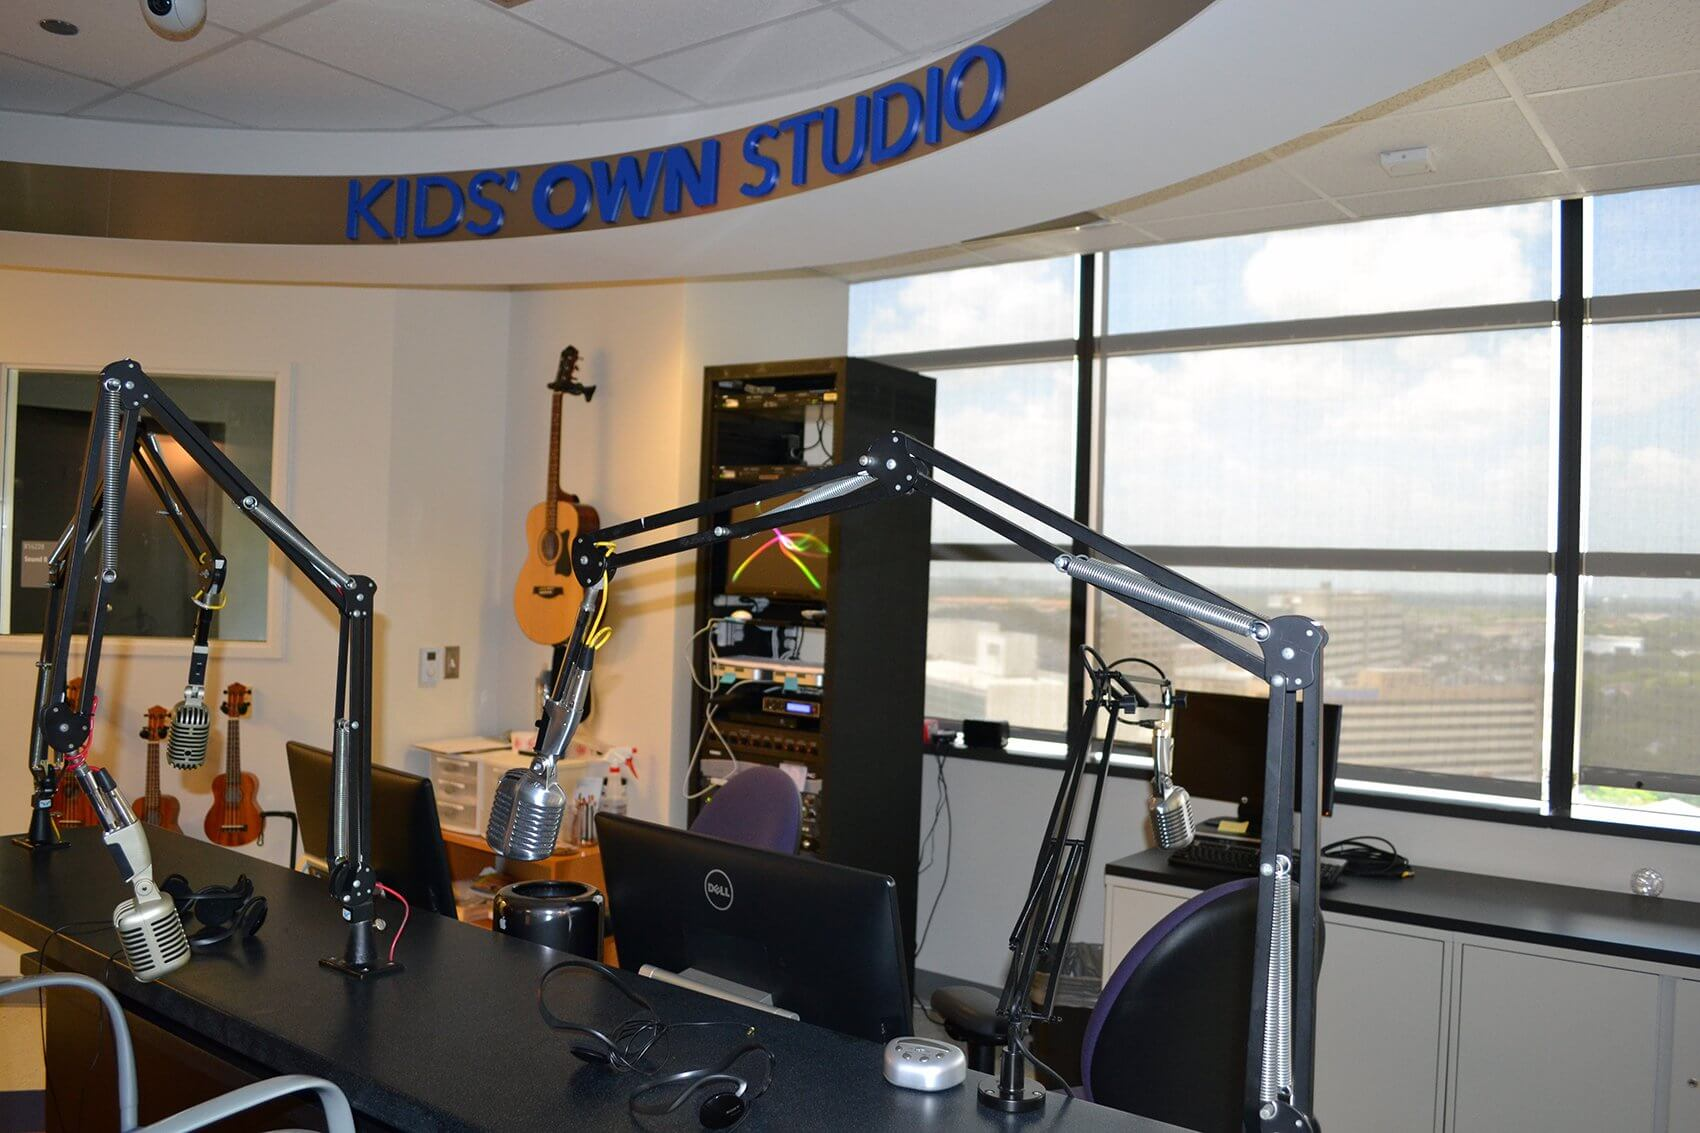 The studio where parts of the video were filmed.